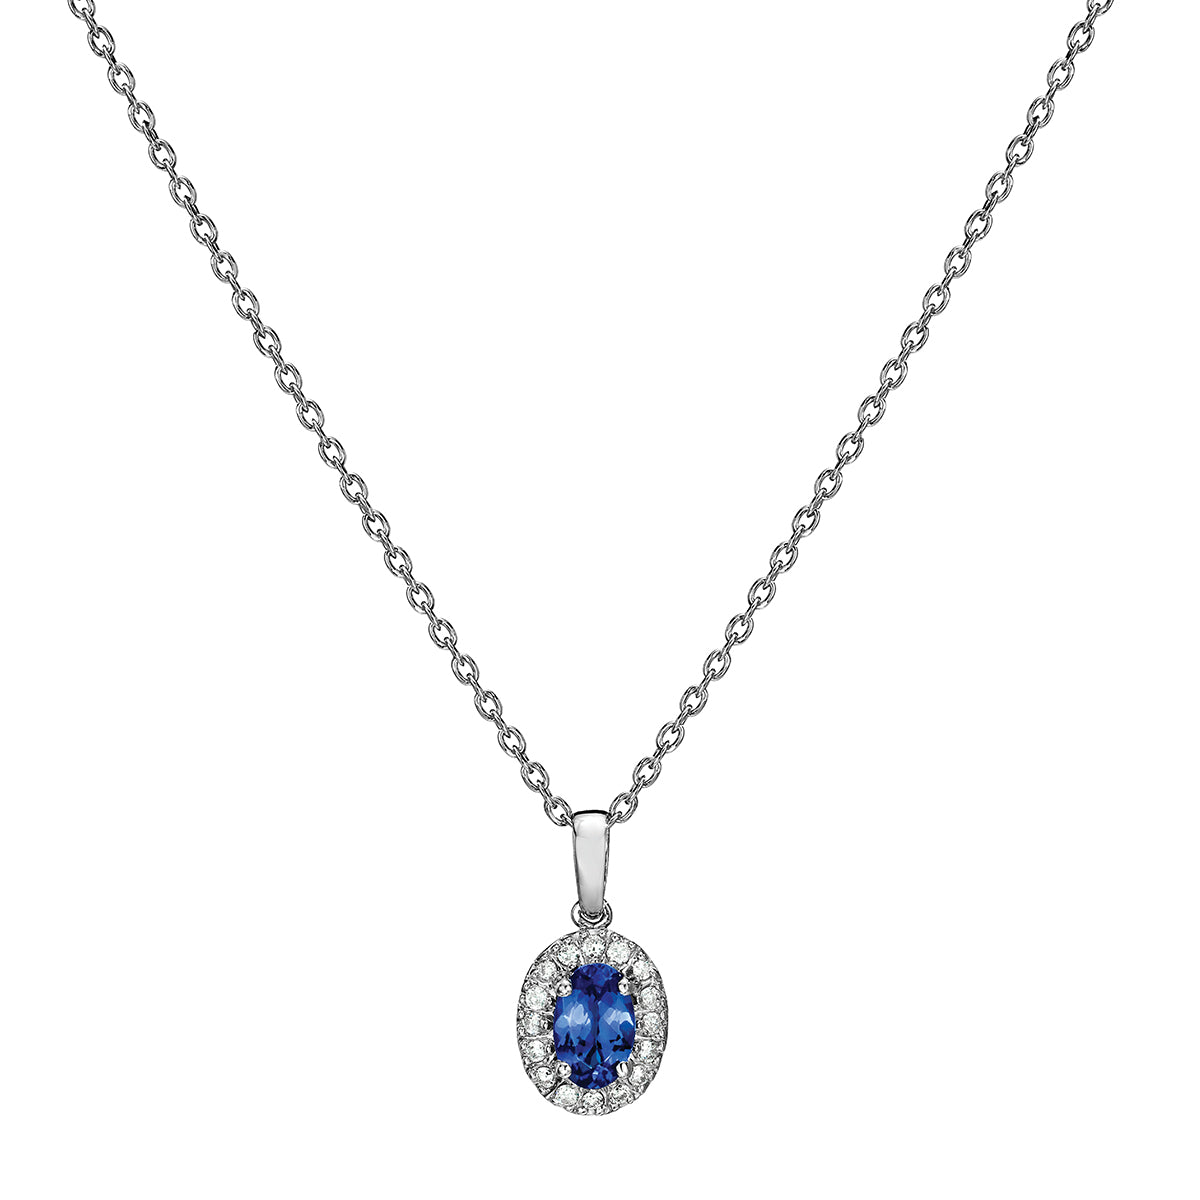 image pendants chain tanzanite diamond white pendant ramsdens jewellery and gold